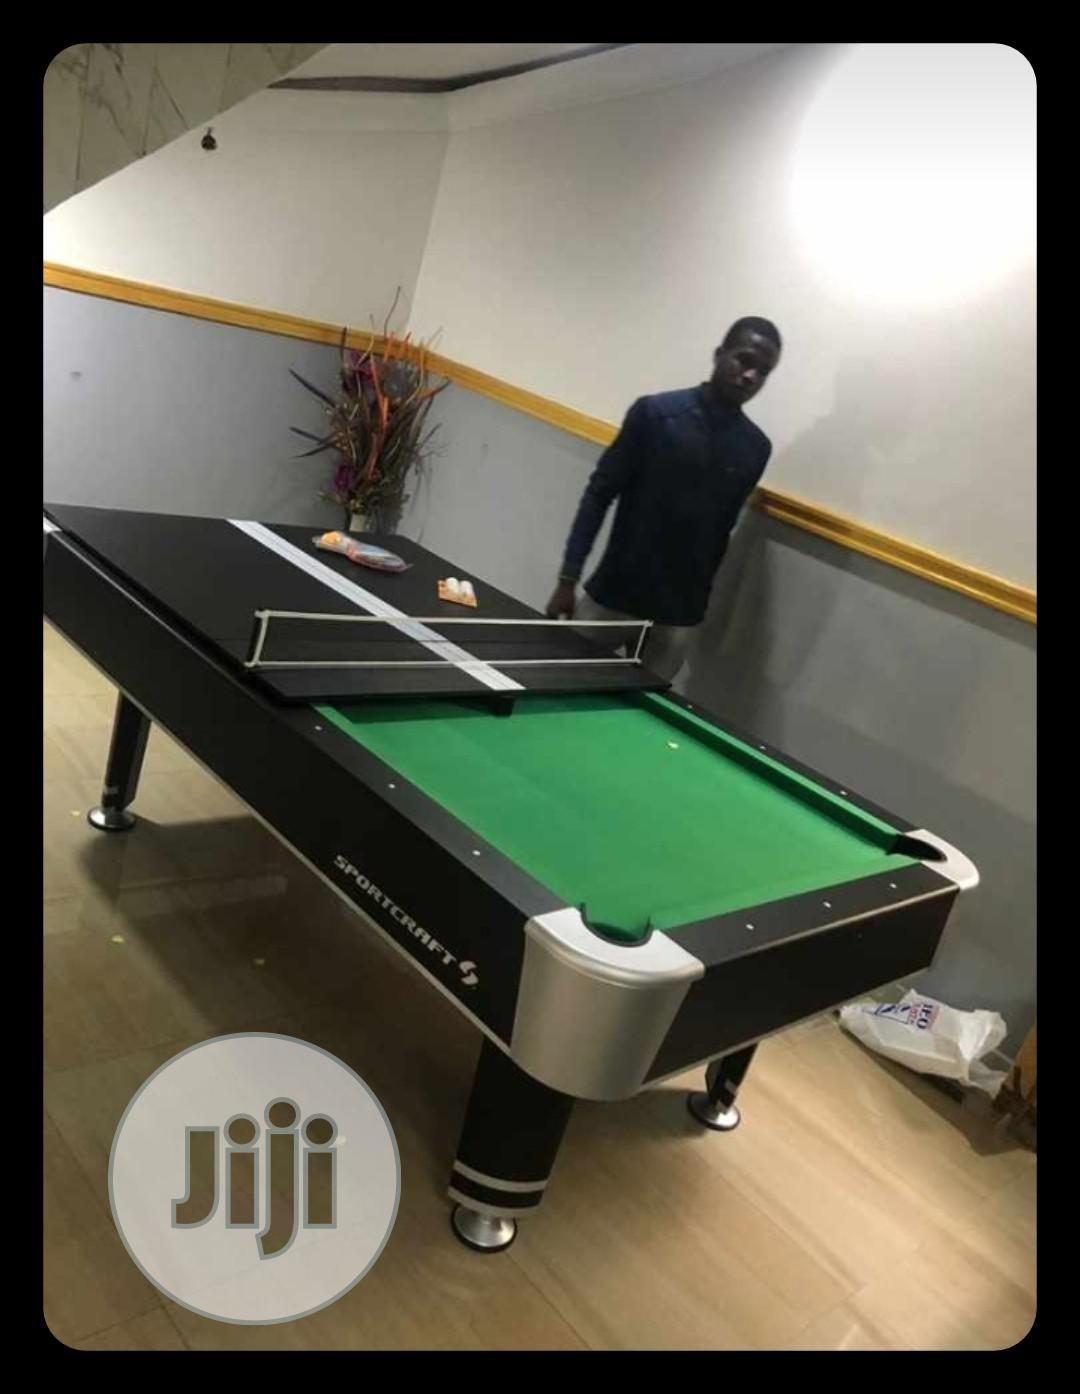 Archive: Brand New Method of Snooker vs Table Tennis Board